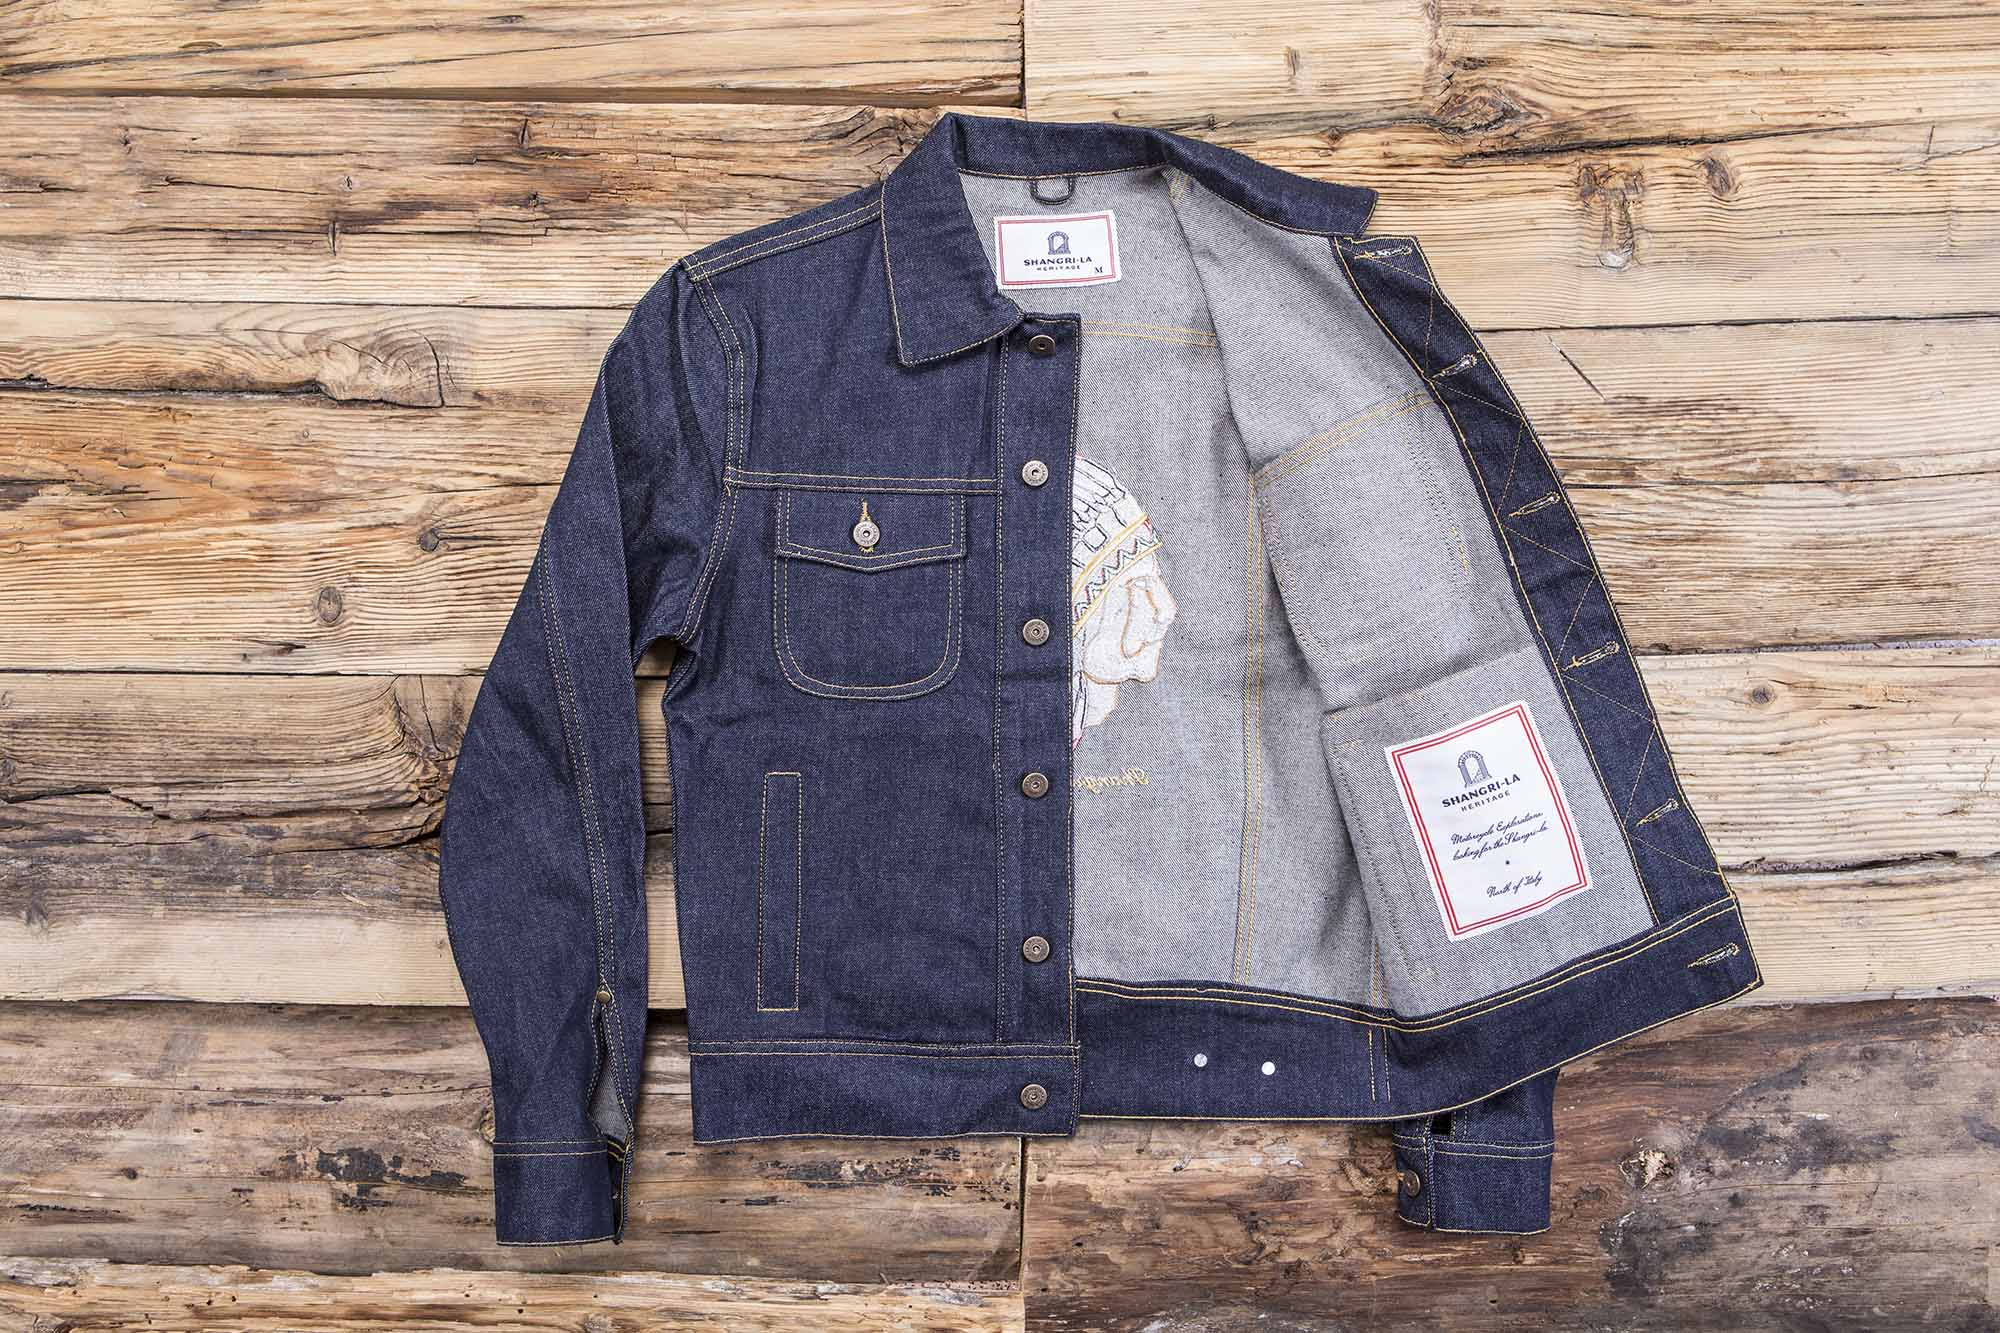 shangri-la-heritage-single-rider-denim-jacket-toro-seduto-still-life-open